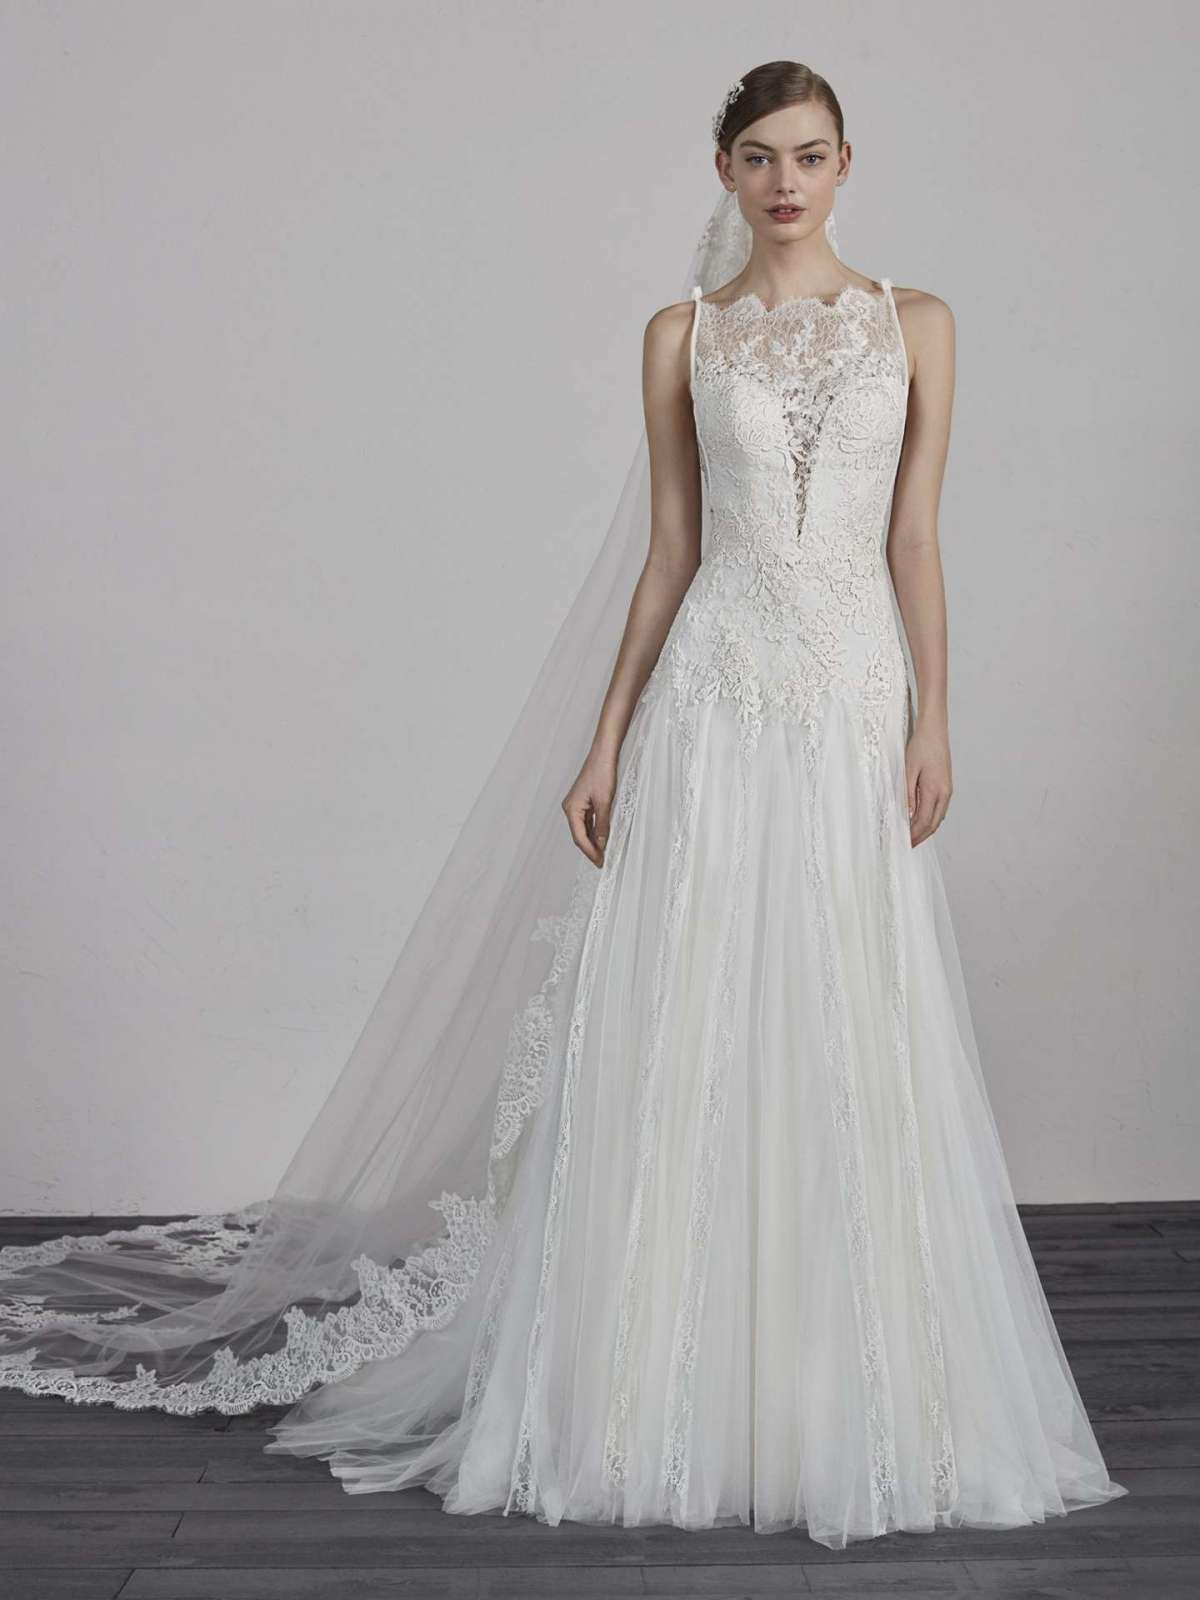 Abito da sposa in pizzo Chantilly Pronovias